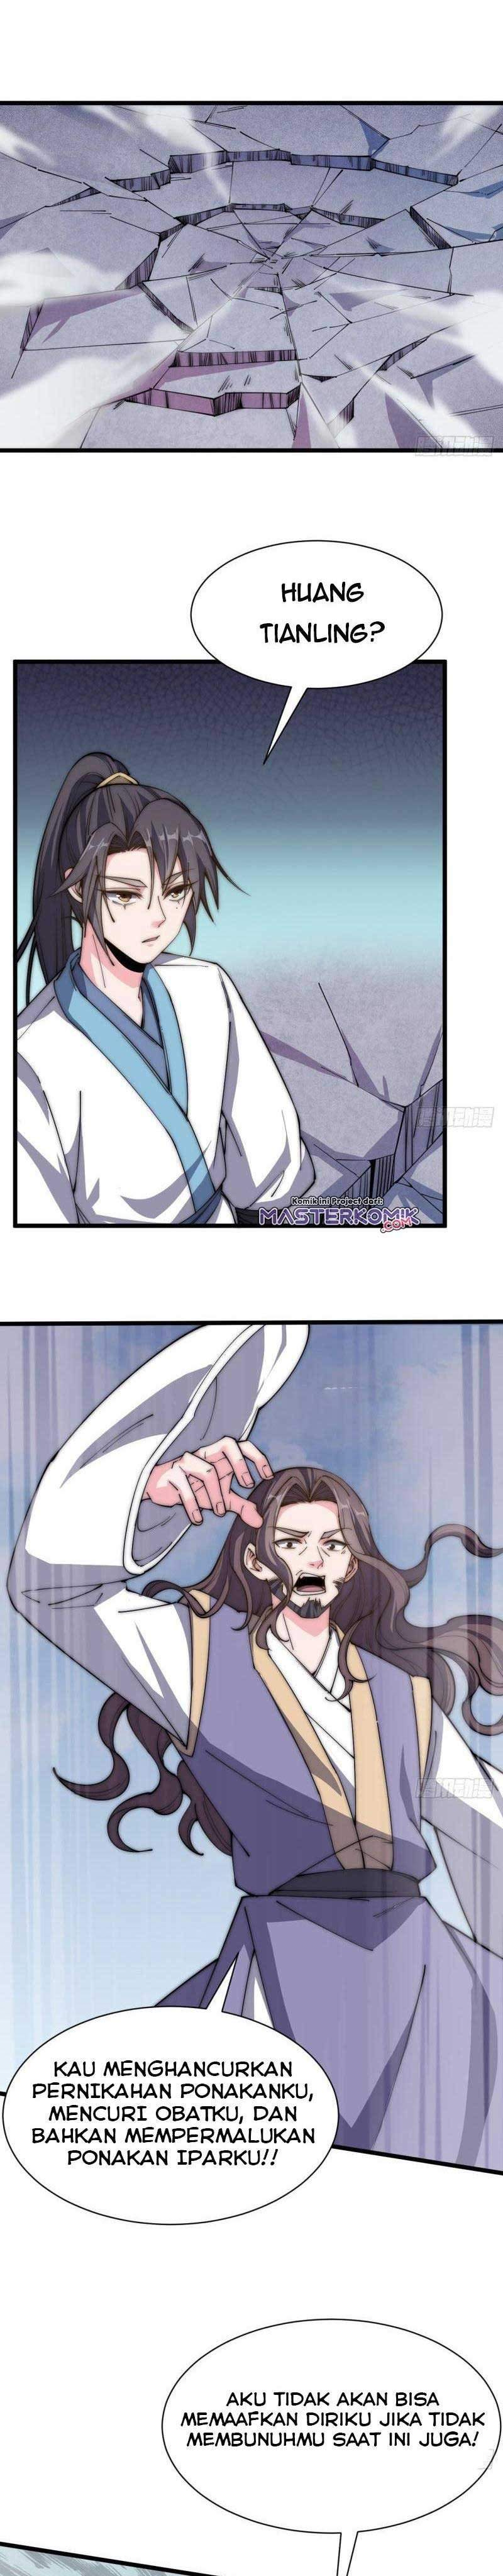 To Be Immortal for 9000 Years Chapter 36